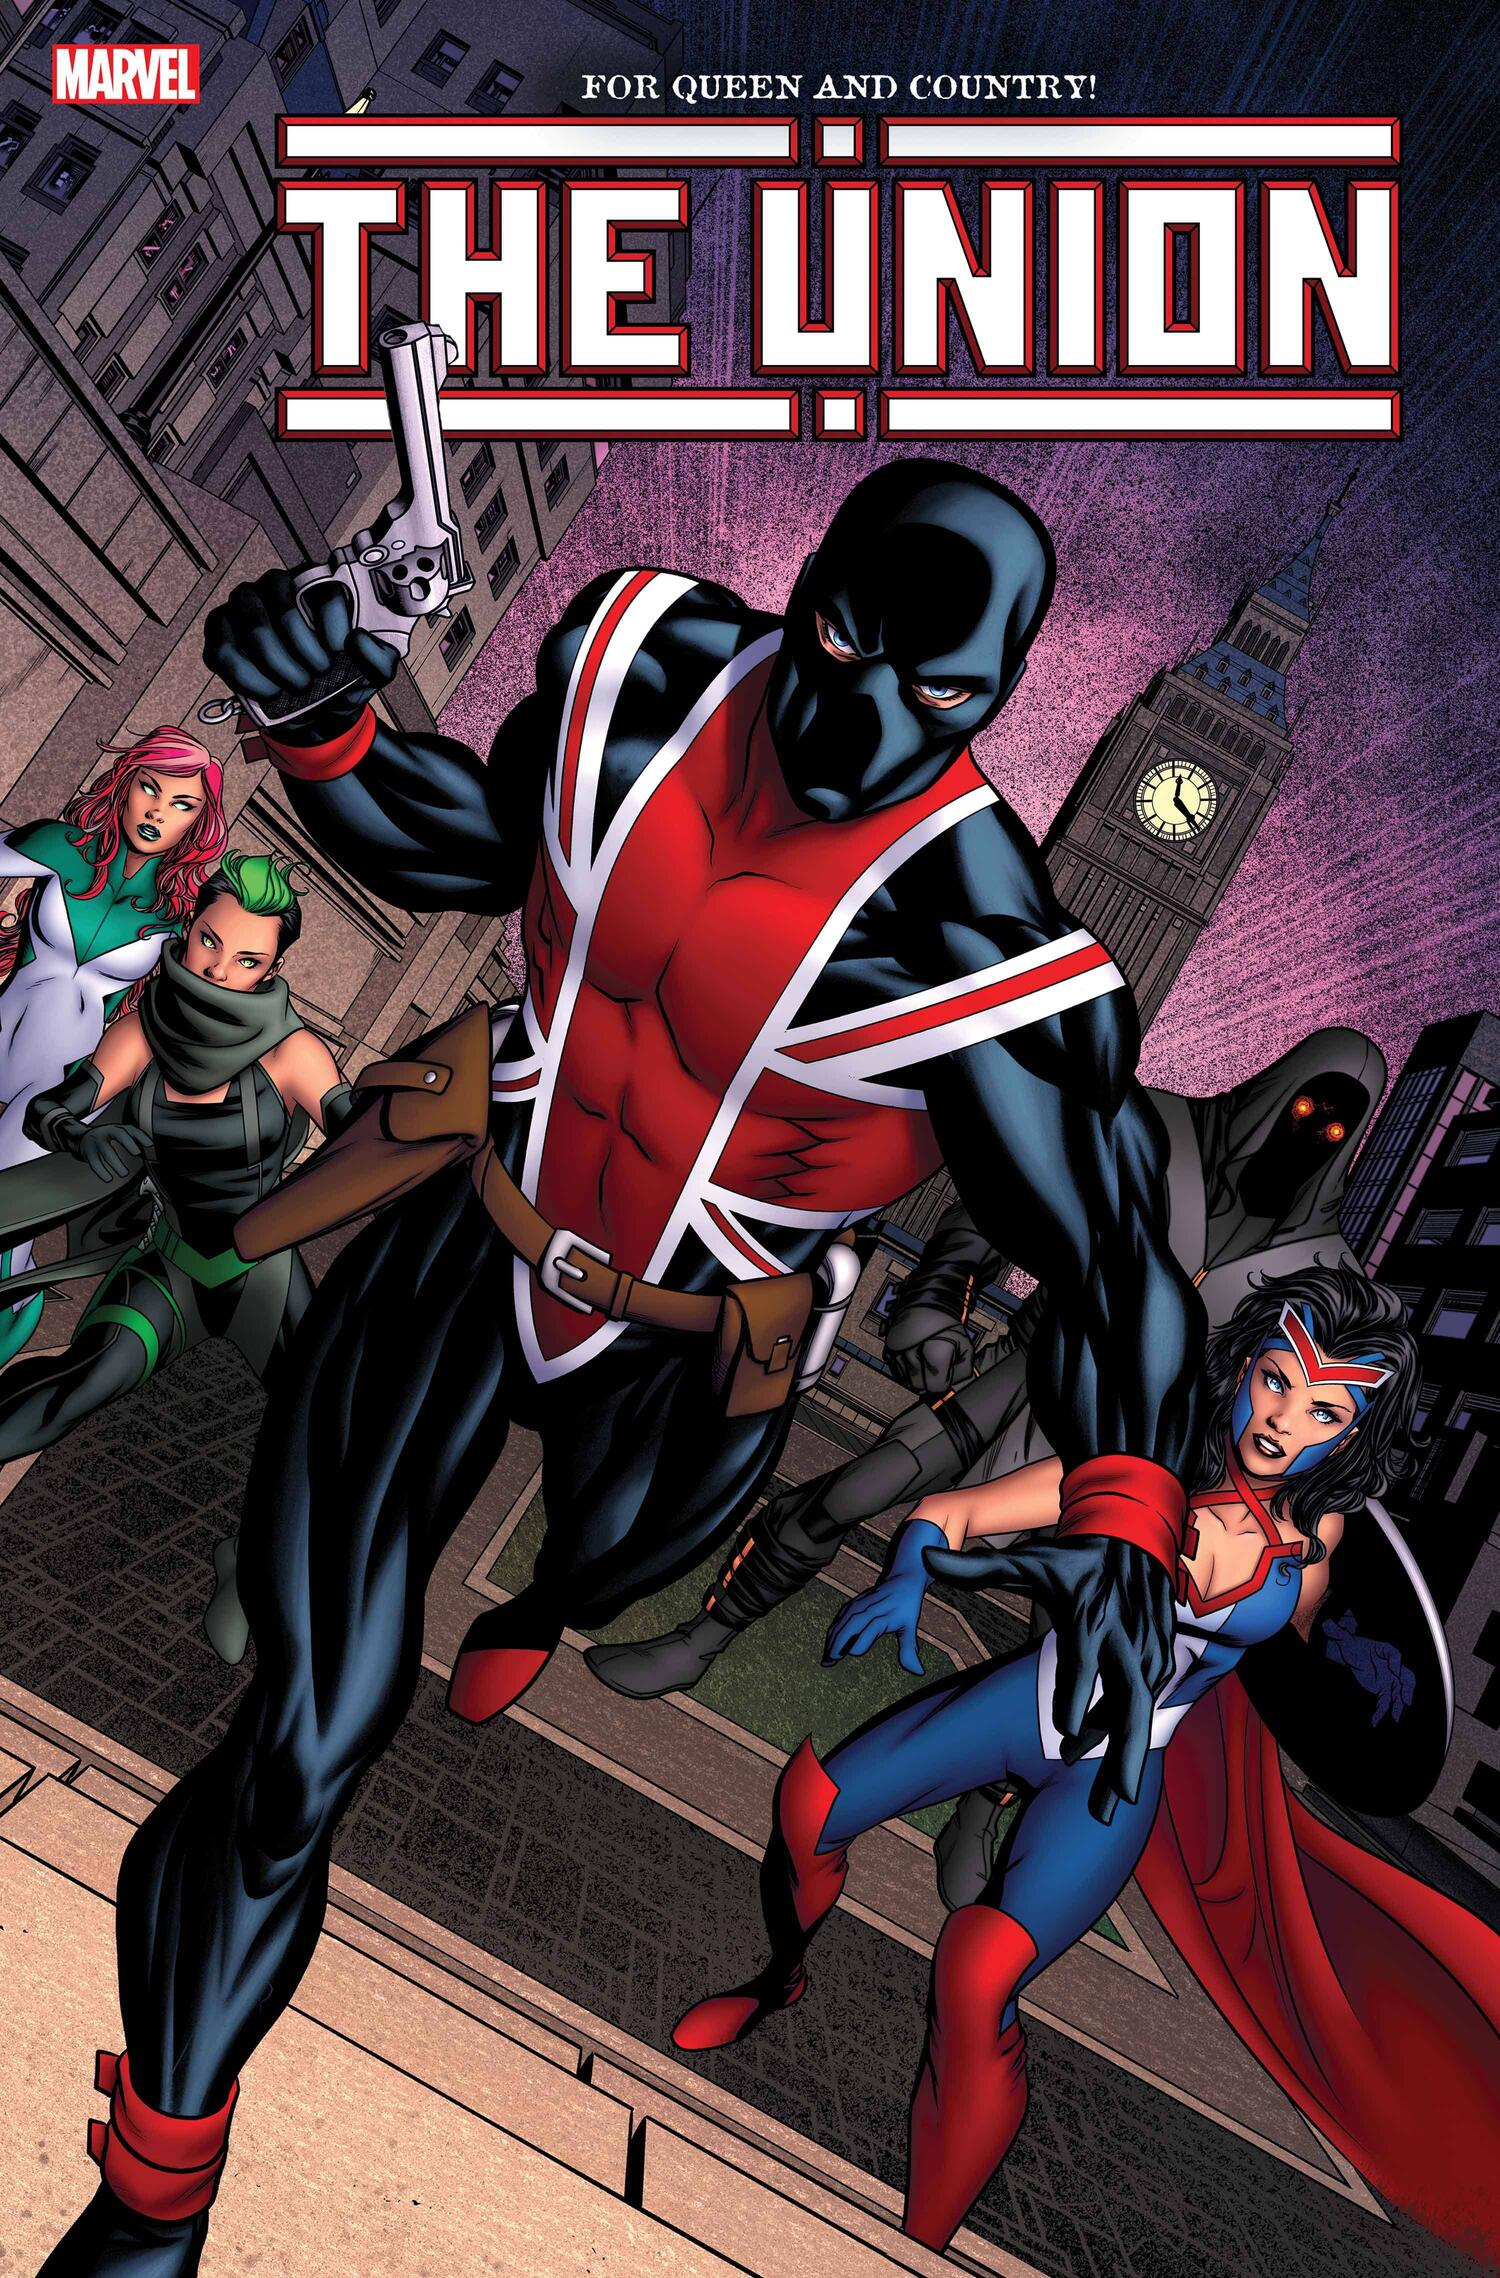 THE UNION #1 VARIANT COVER by MIKE MCKONE with colors by MORRY HOLLOWELL (MAR200867)